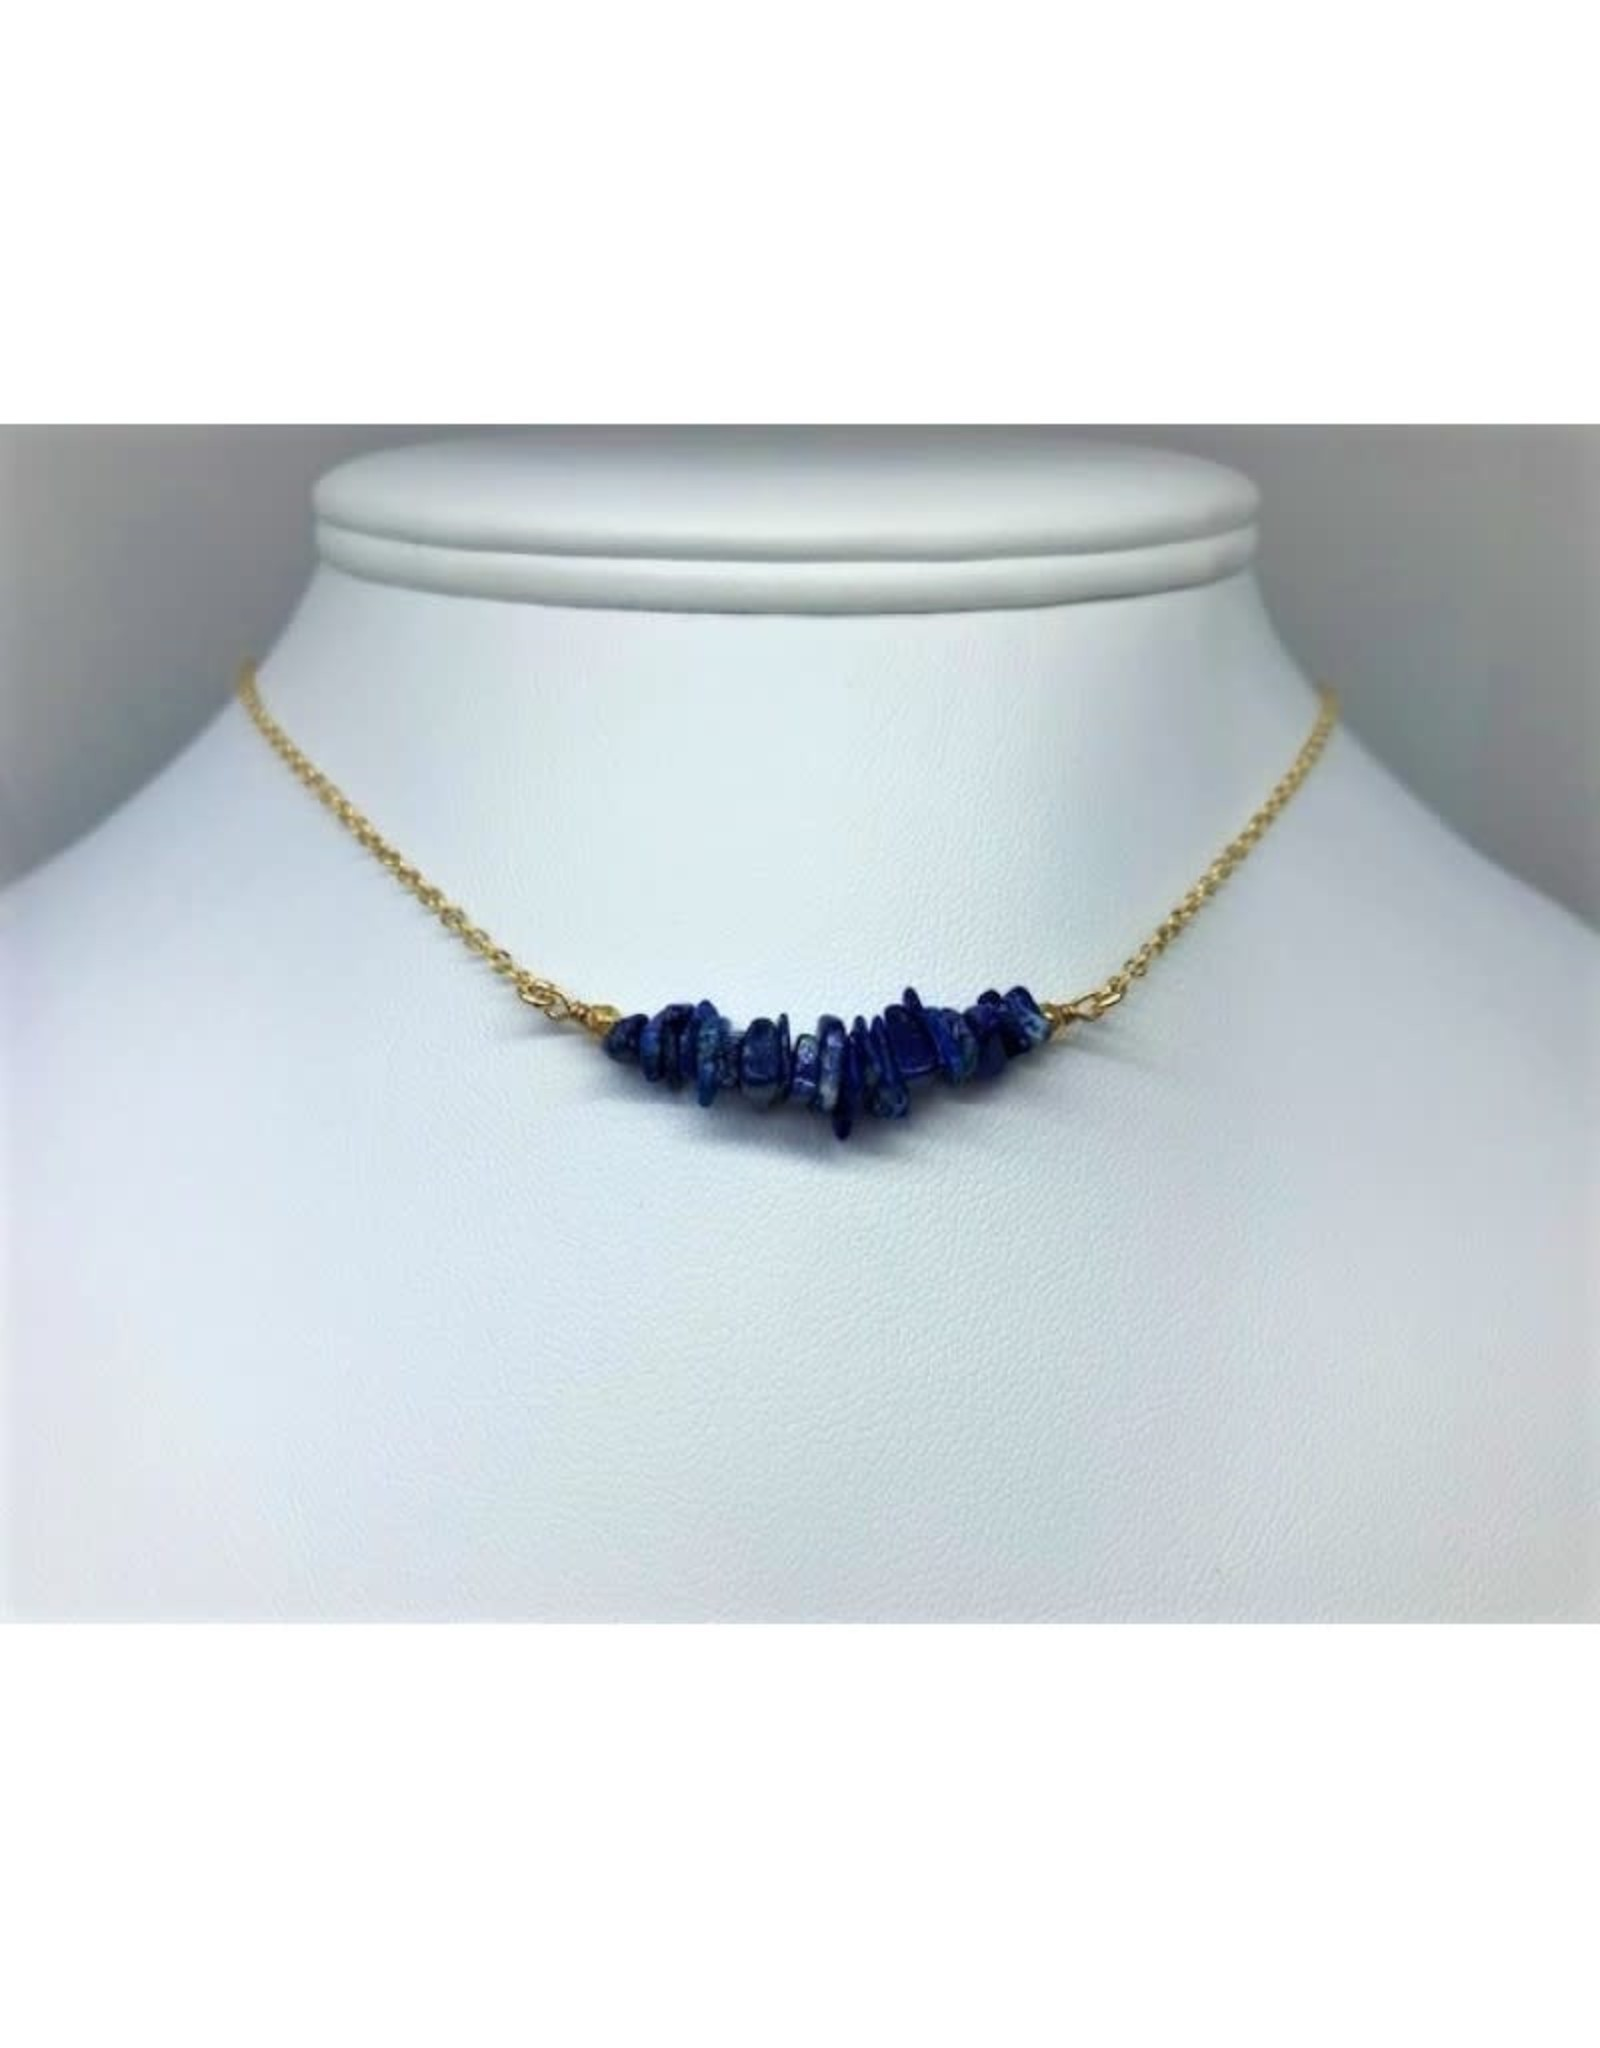 Gemstone Bar Necklace - Lapis